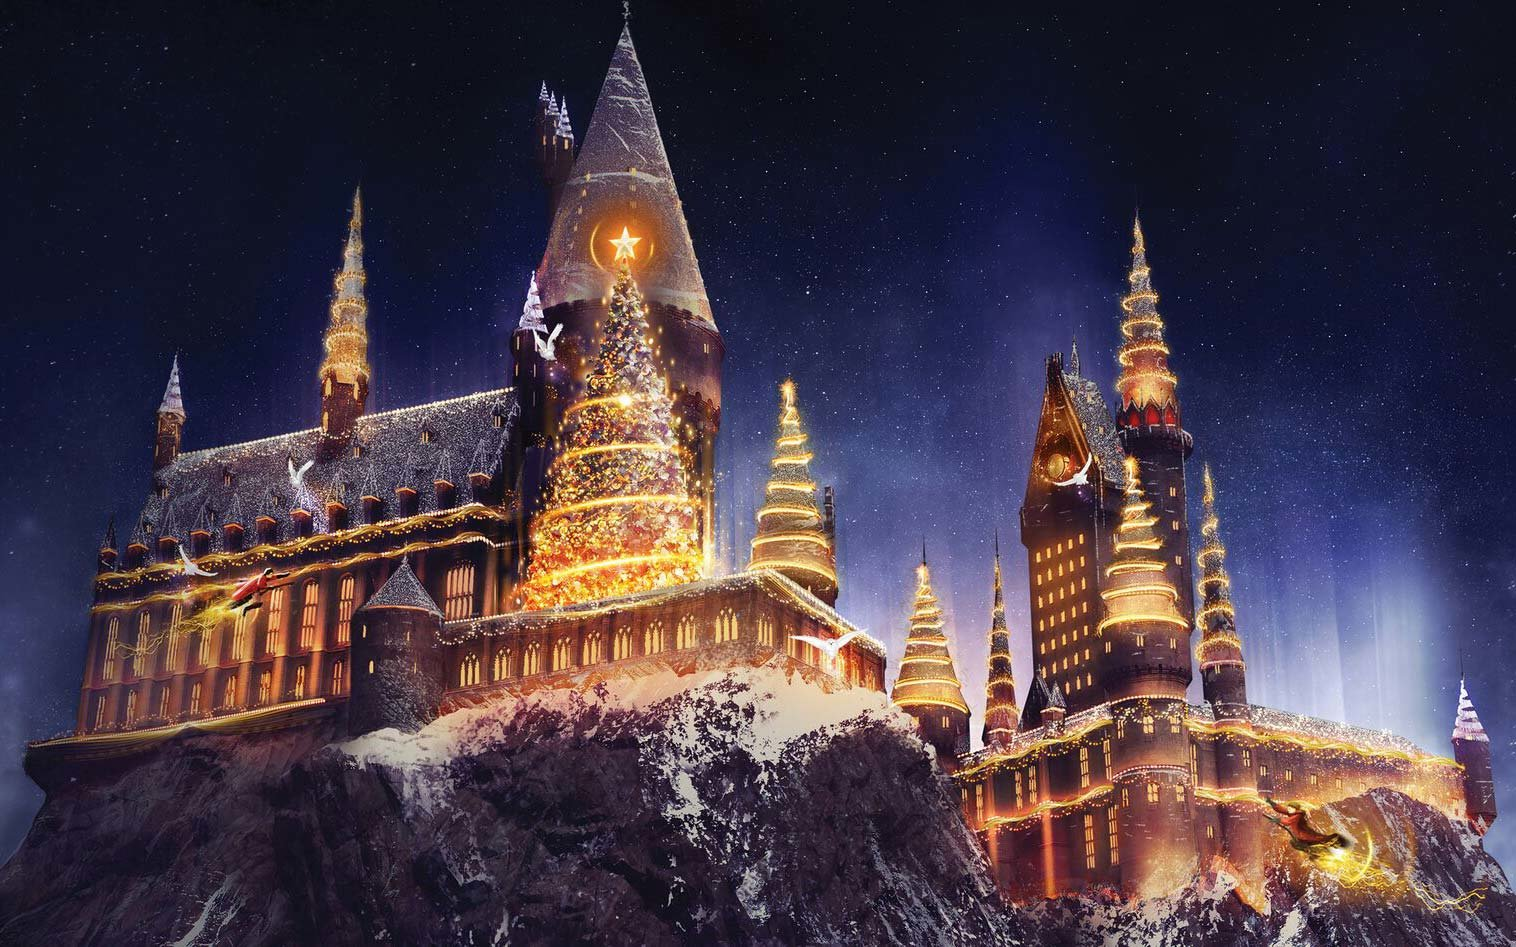 Christmas at Wizarding World of Harry Potter